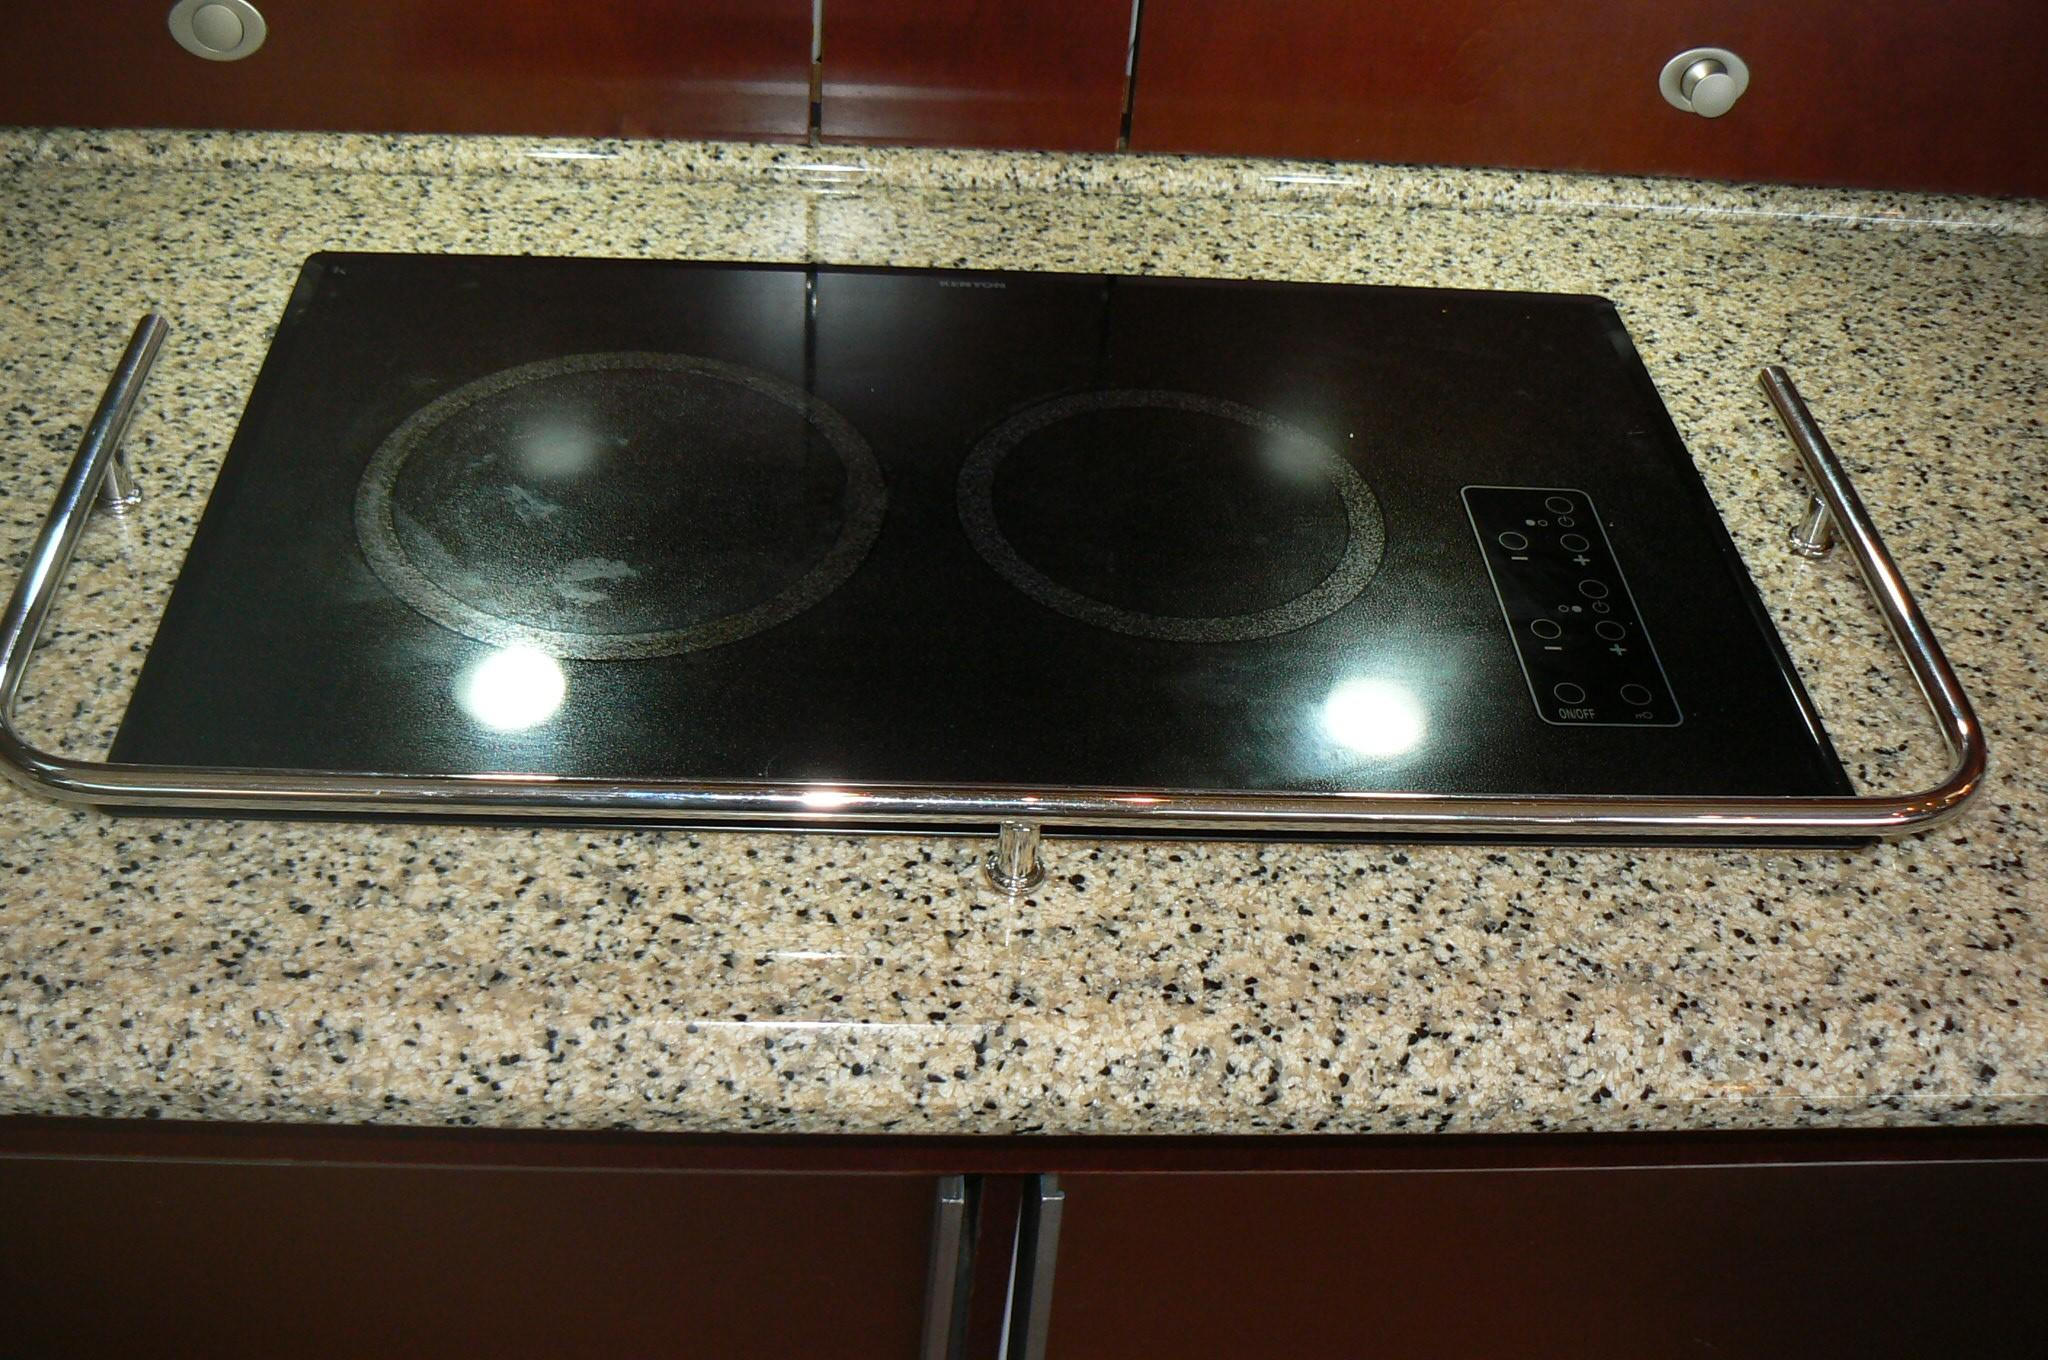 2 Burner Cook Top